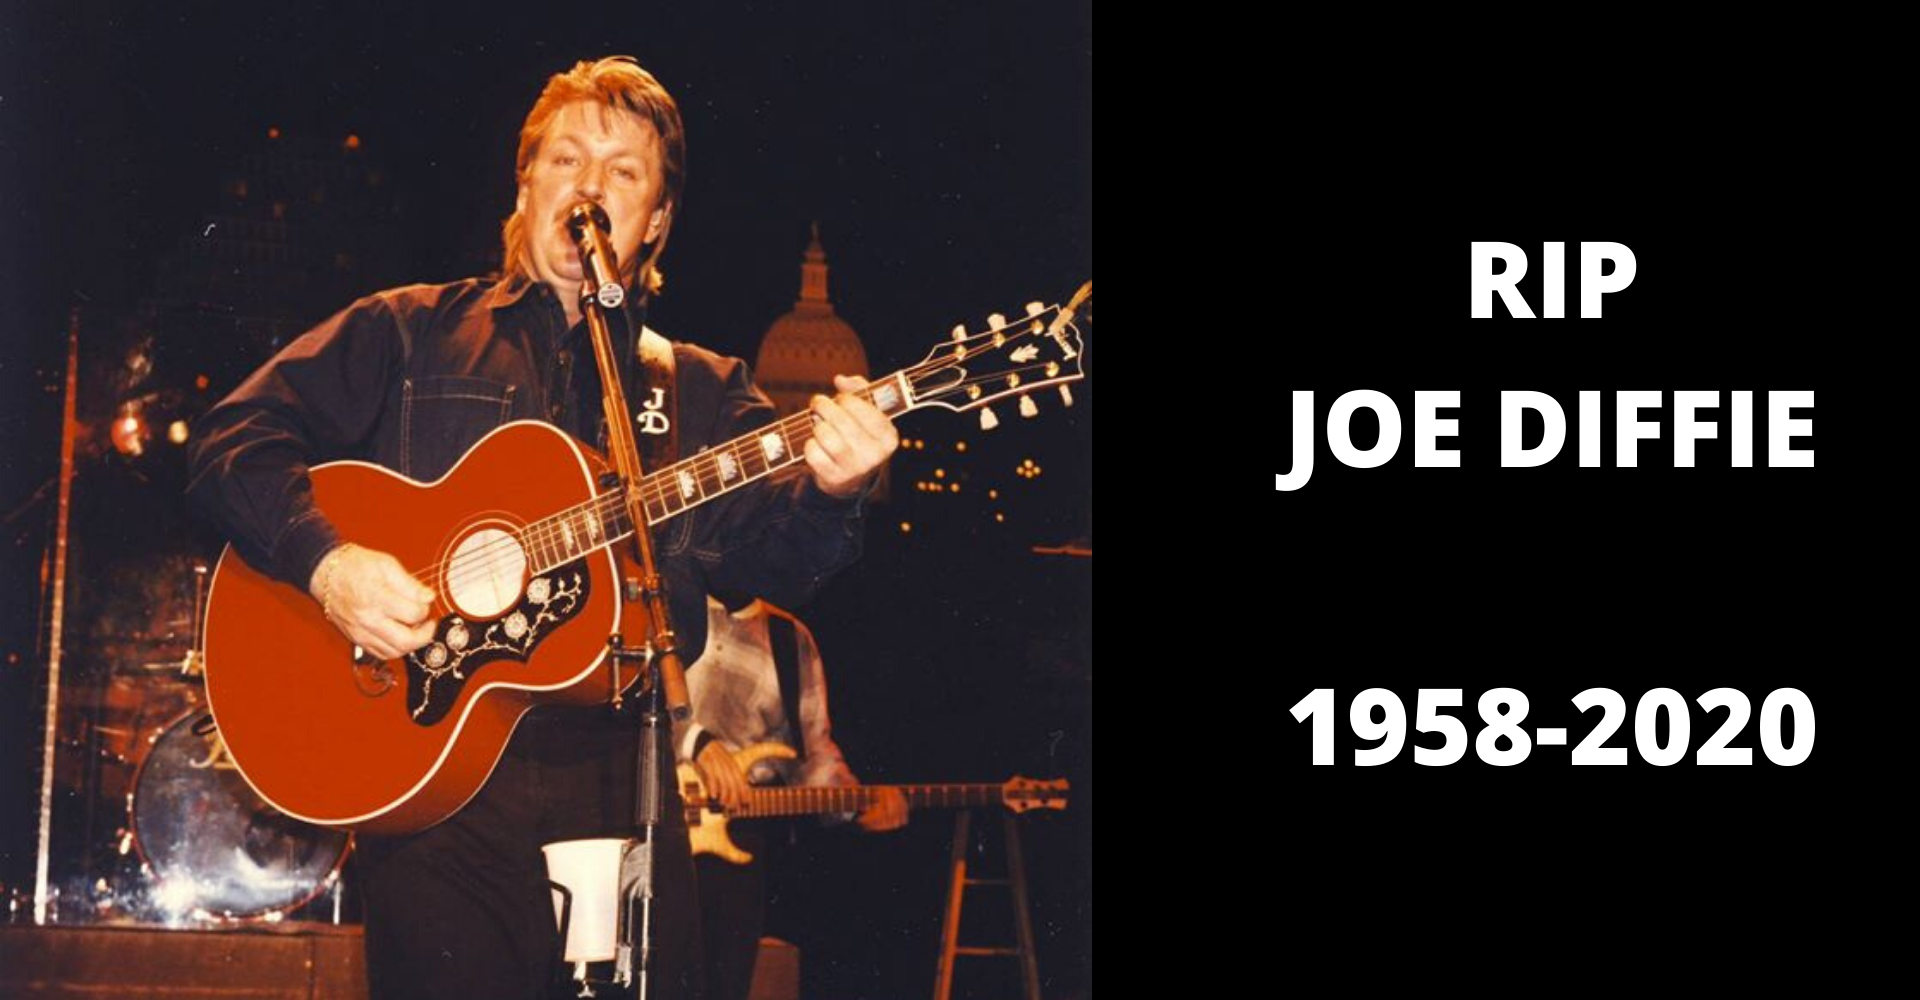 Country music's Joe Diffie has passed away from Coronavirus